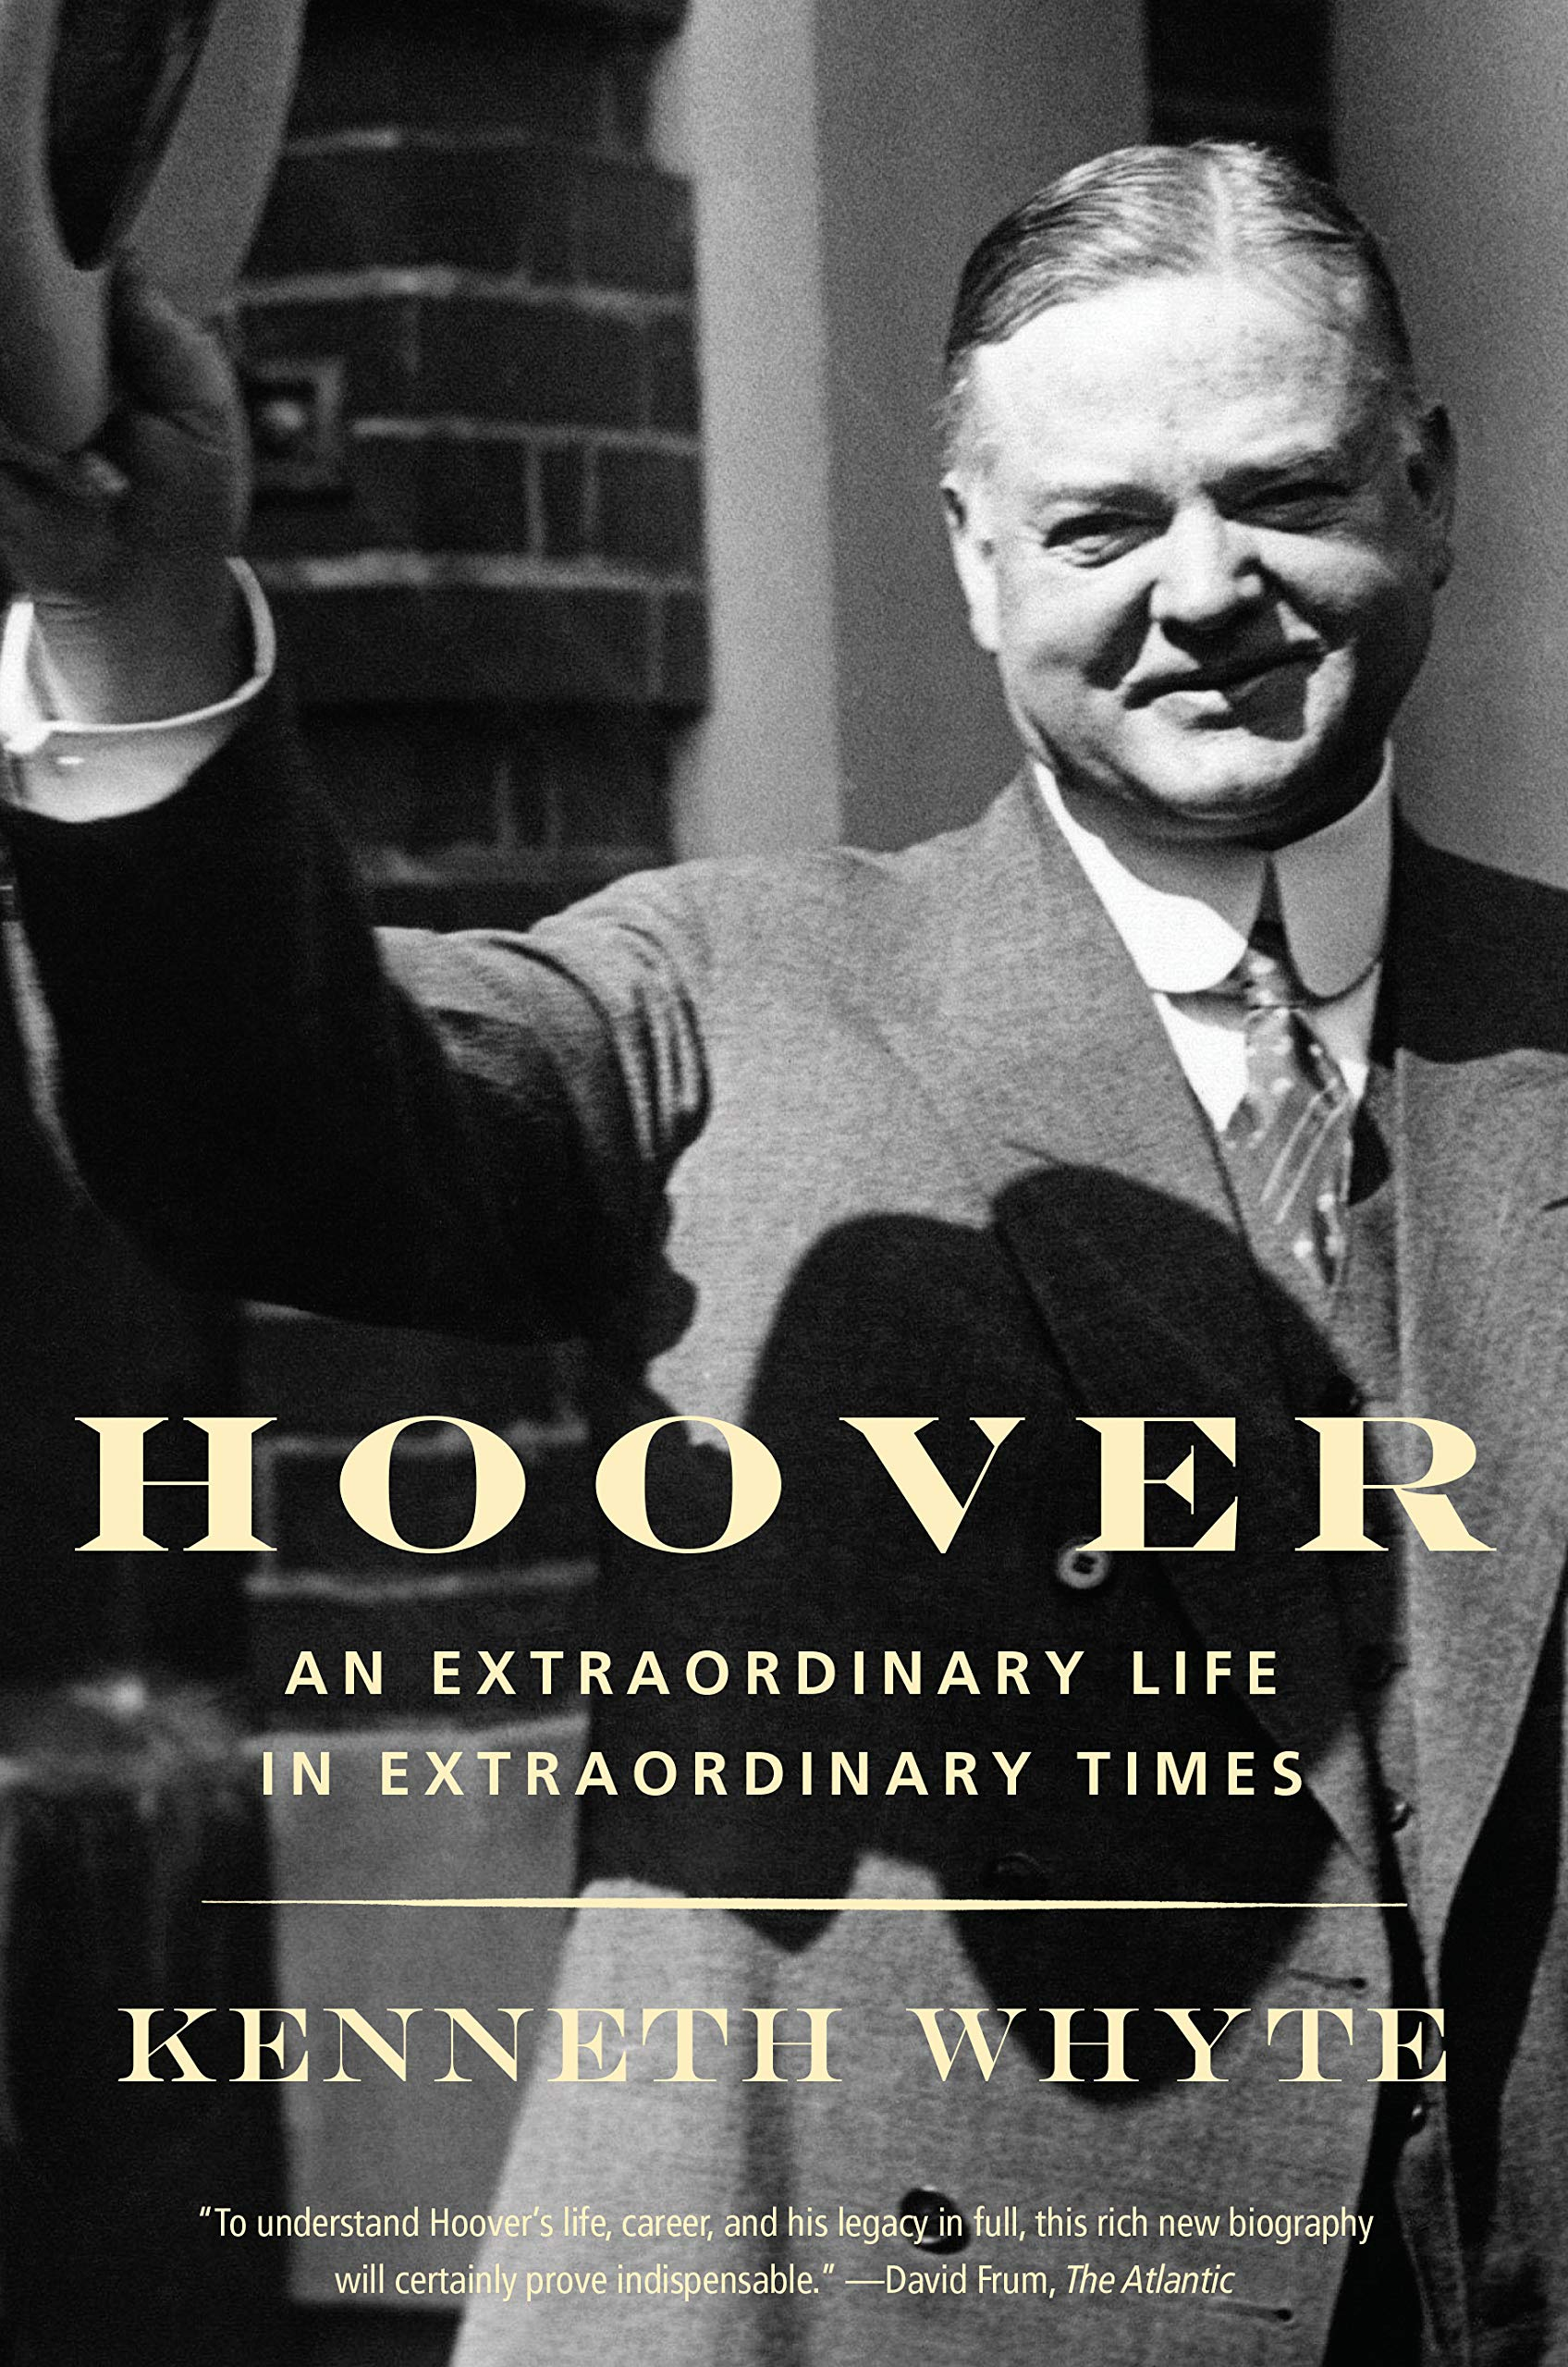 Buy Hoover An Extraordinary Life In Extraordinary Times Book Online At Low Prices In India Hoover An Extraordinary Life In Extraordinary Times Reviews Ratings Amazon In